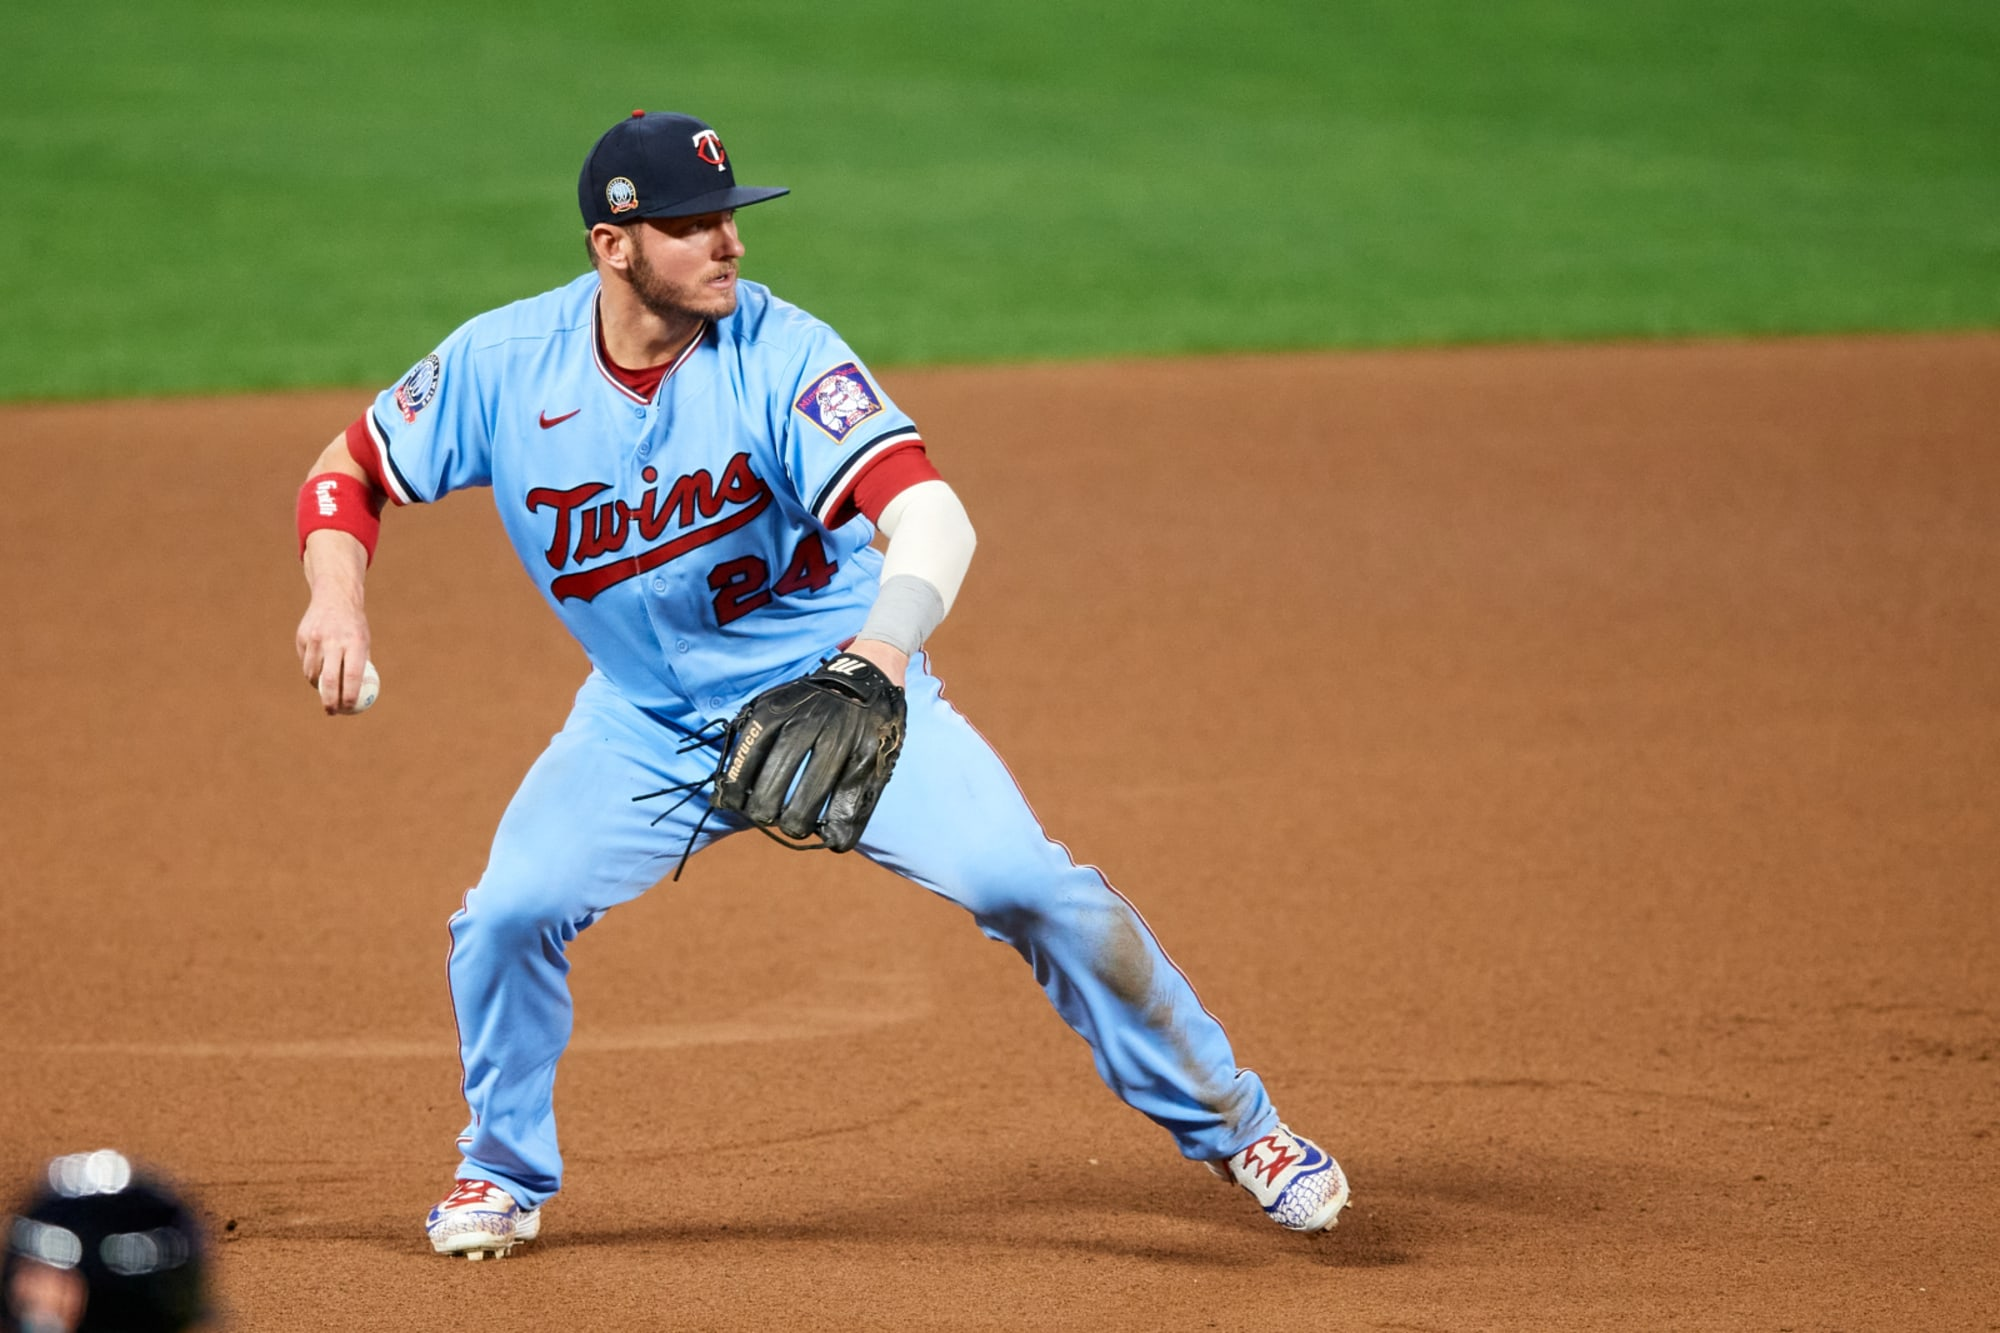 Minnesota Twins: Defensive Errors Frustrate Team and Fans